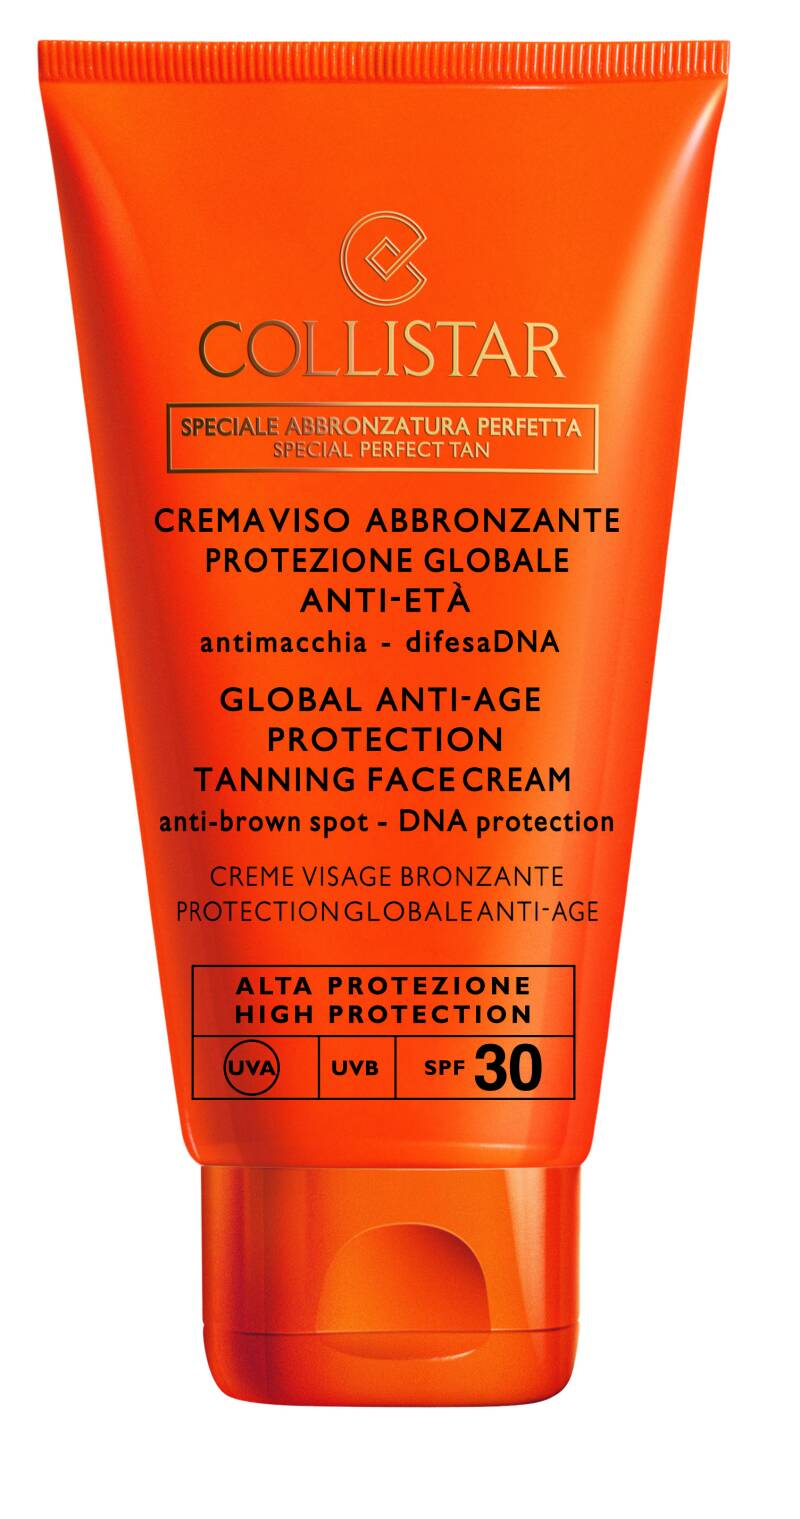 Globale Anti-Age Protection Tanning Face Cream SPF30 50 ml